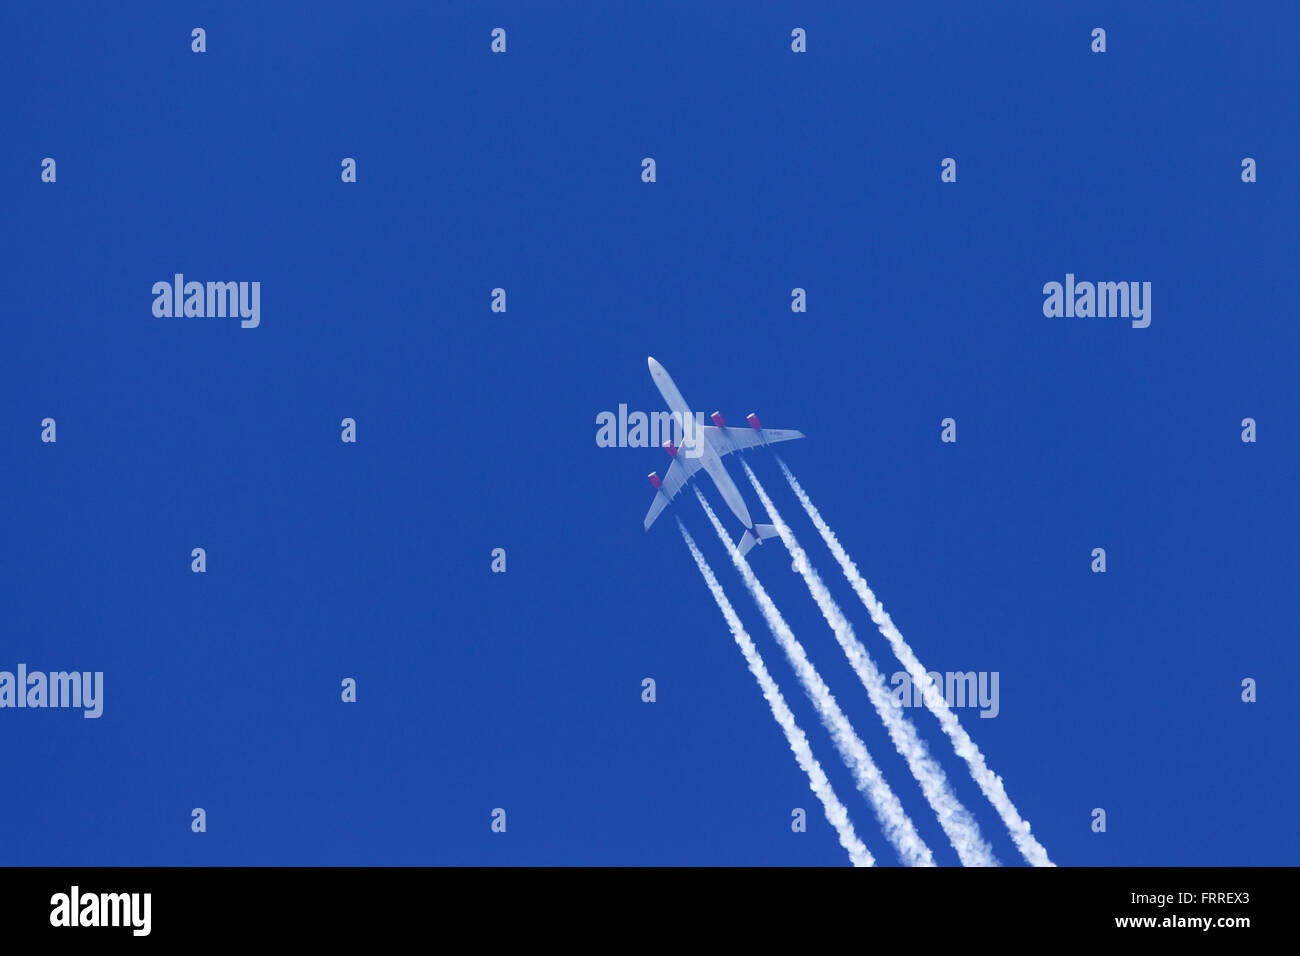 Engine exhaust contrails - cirrus aviaticus - forming behind four-engine Airbus A340 plane against blue sky - Stock Image